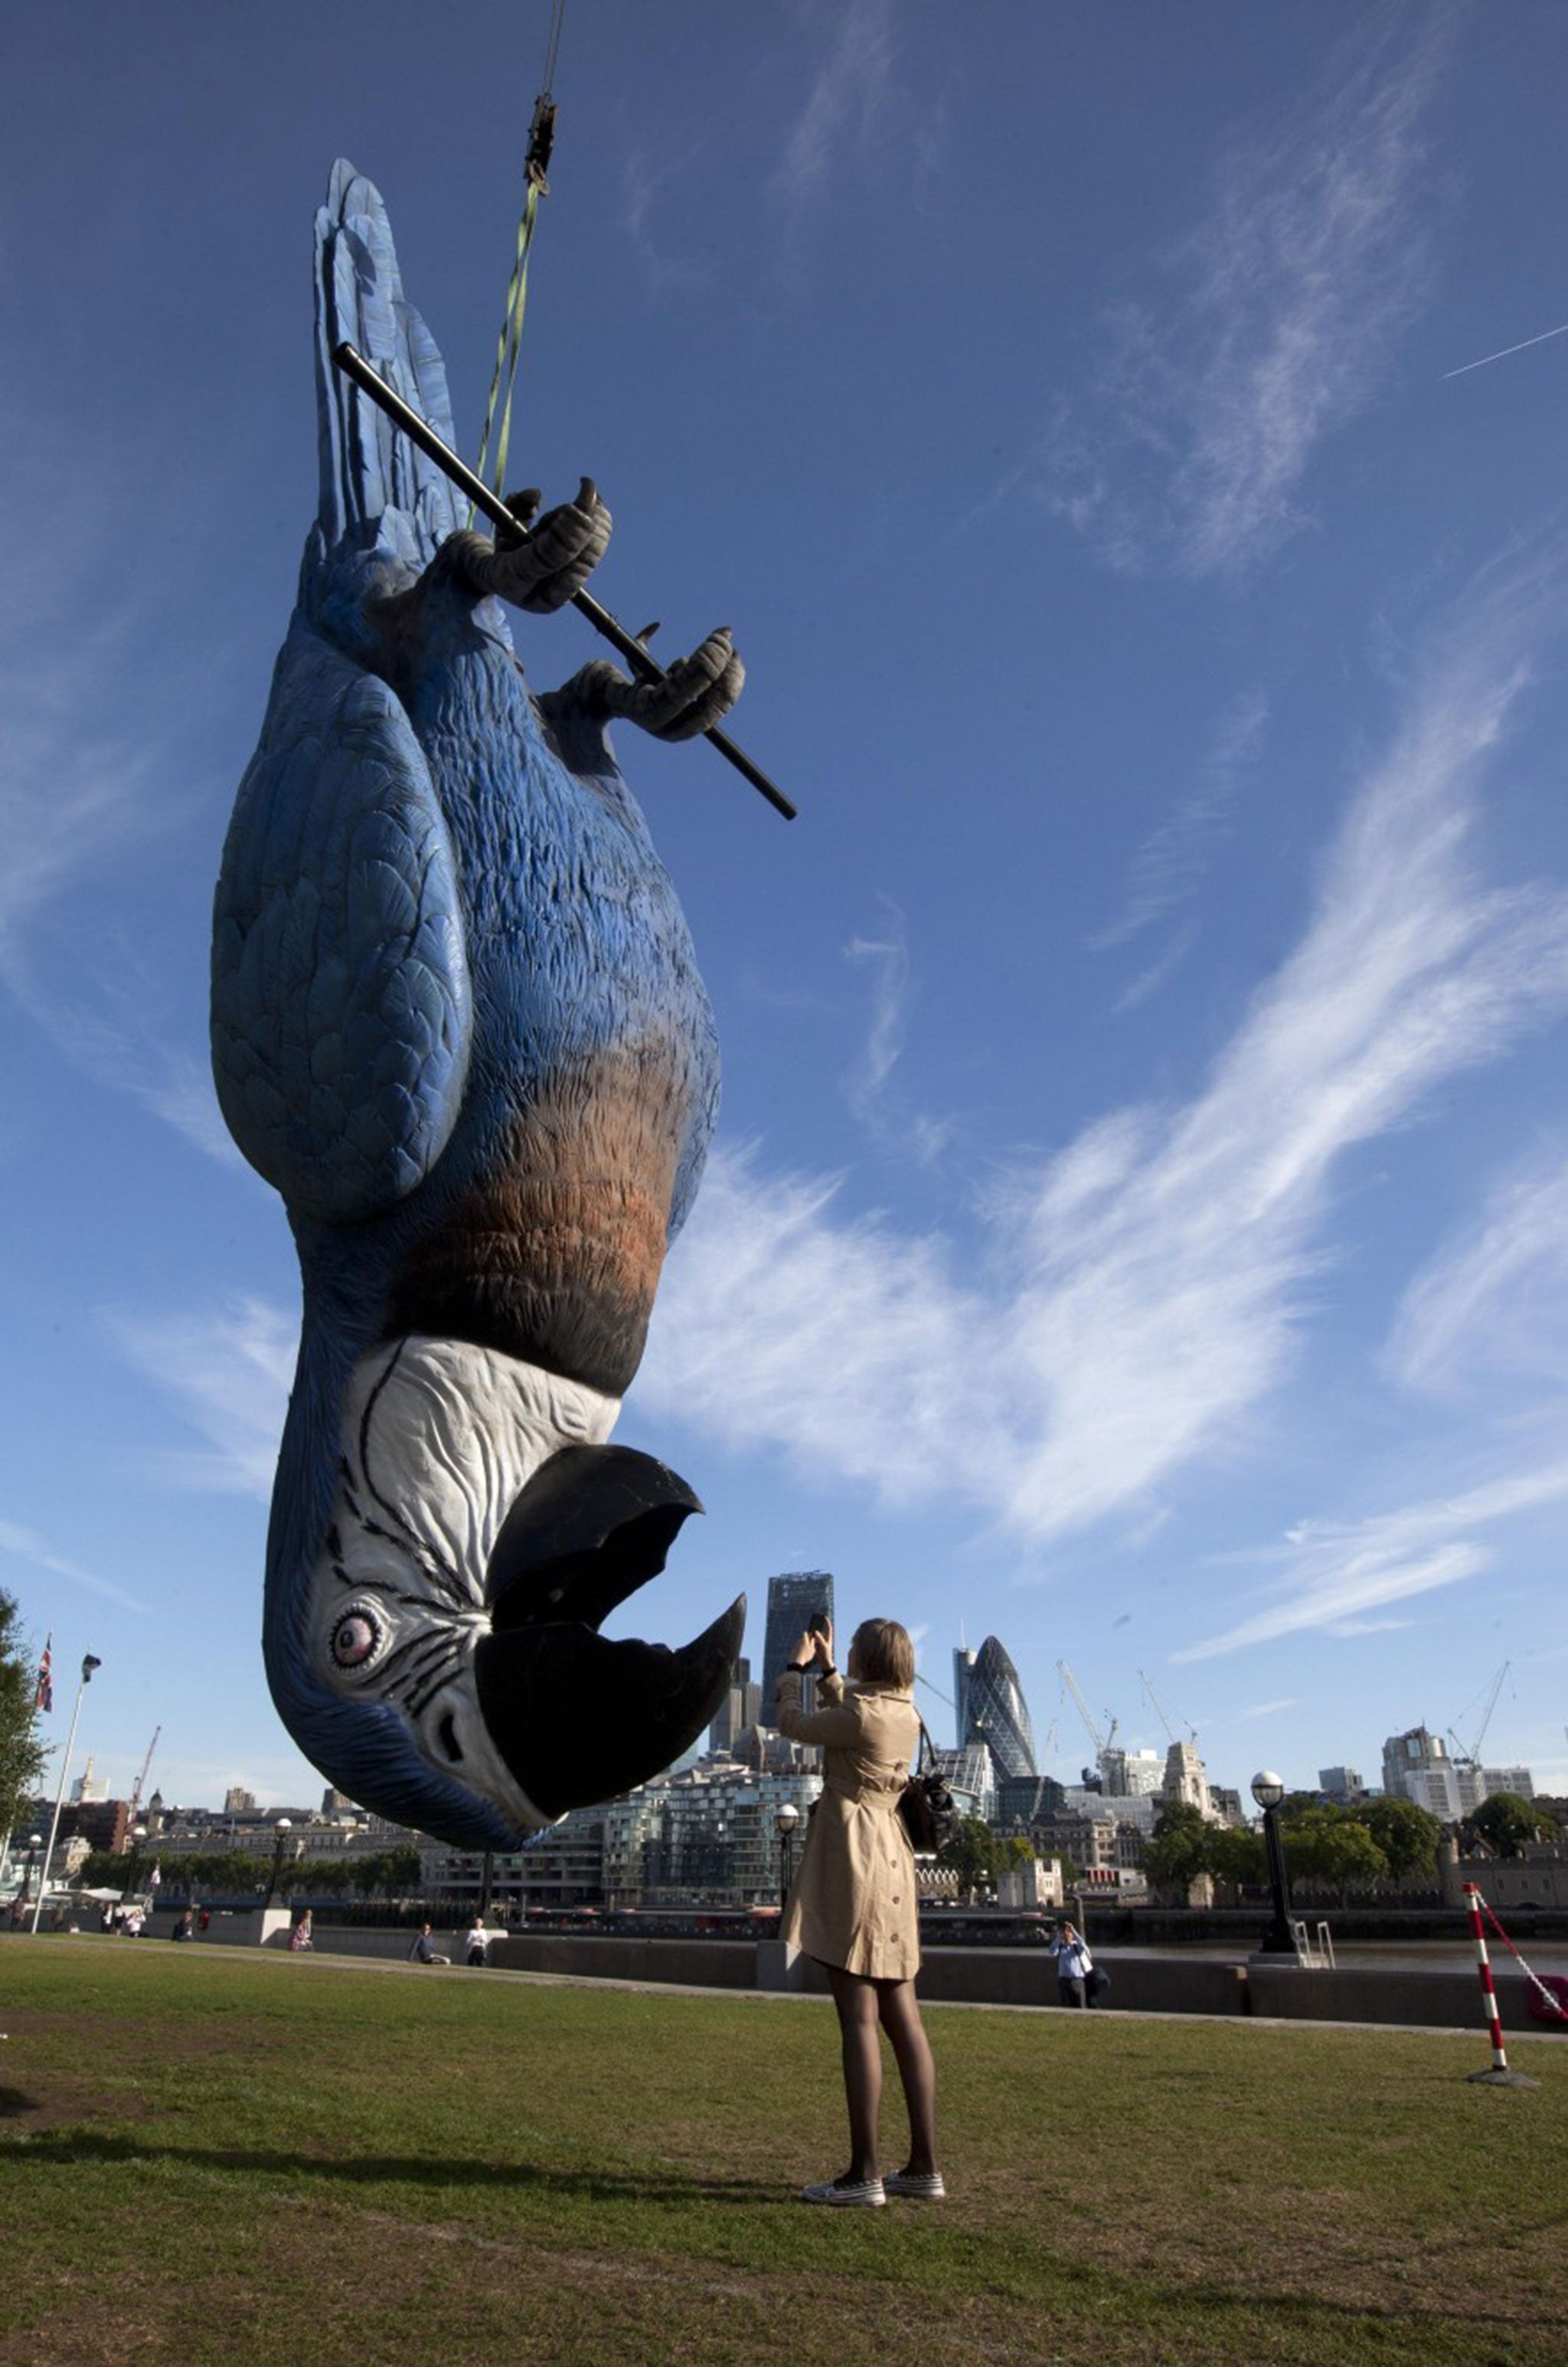 Monty Python S Dead Parrot Suspended From Crane In London In Tribute To Comedy Quintet The Independent The Independent